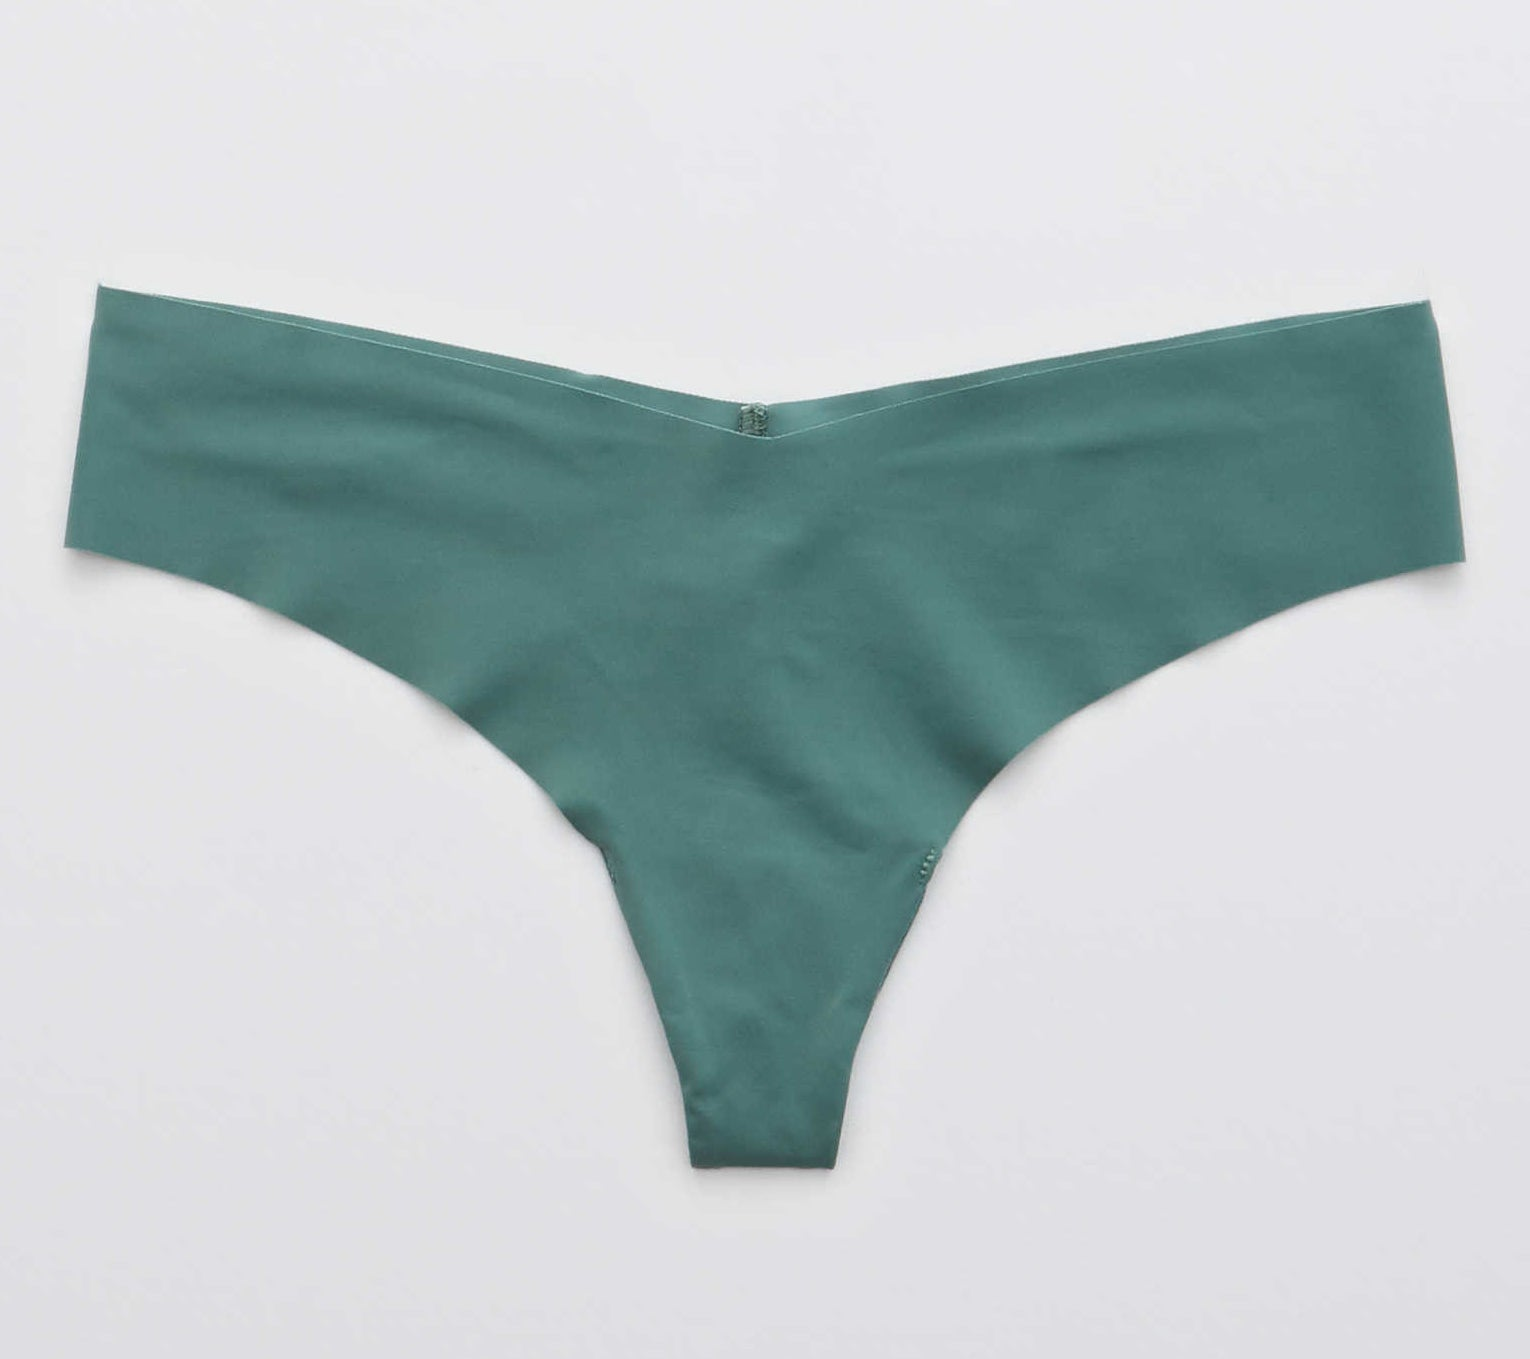 dark teal thong in smooth no-show fabric with a slight dip in the center front